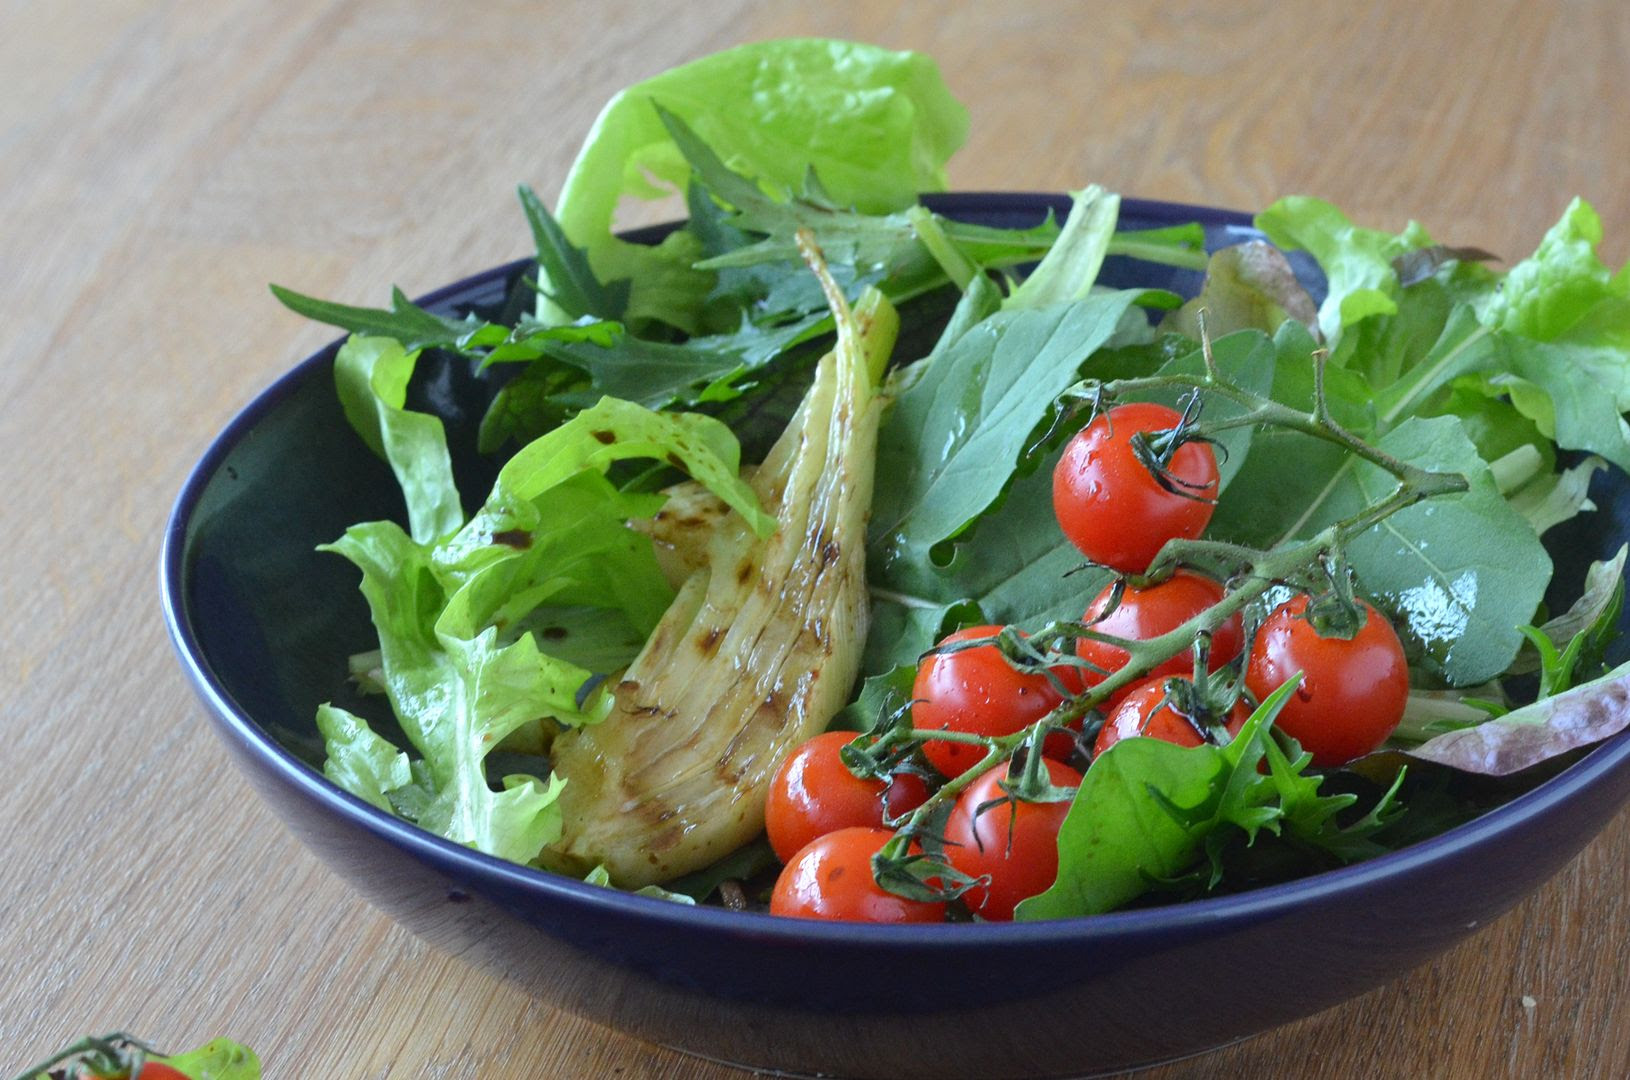 Garden Salad with Grilled Fennel, Tomato & Balsamic